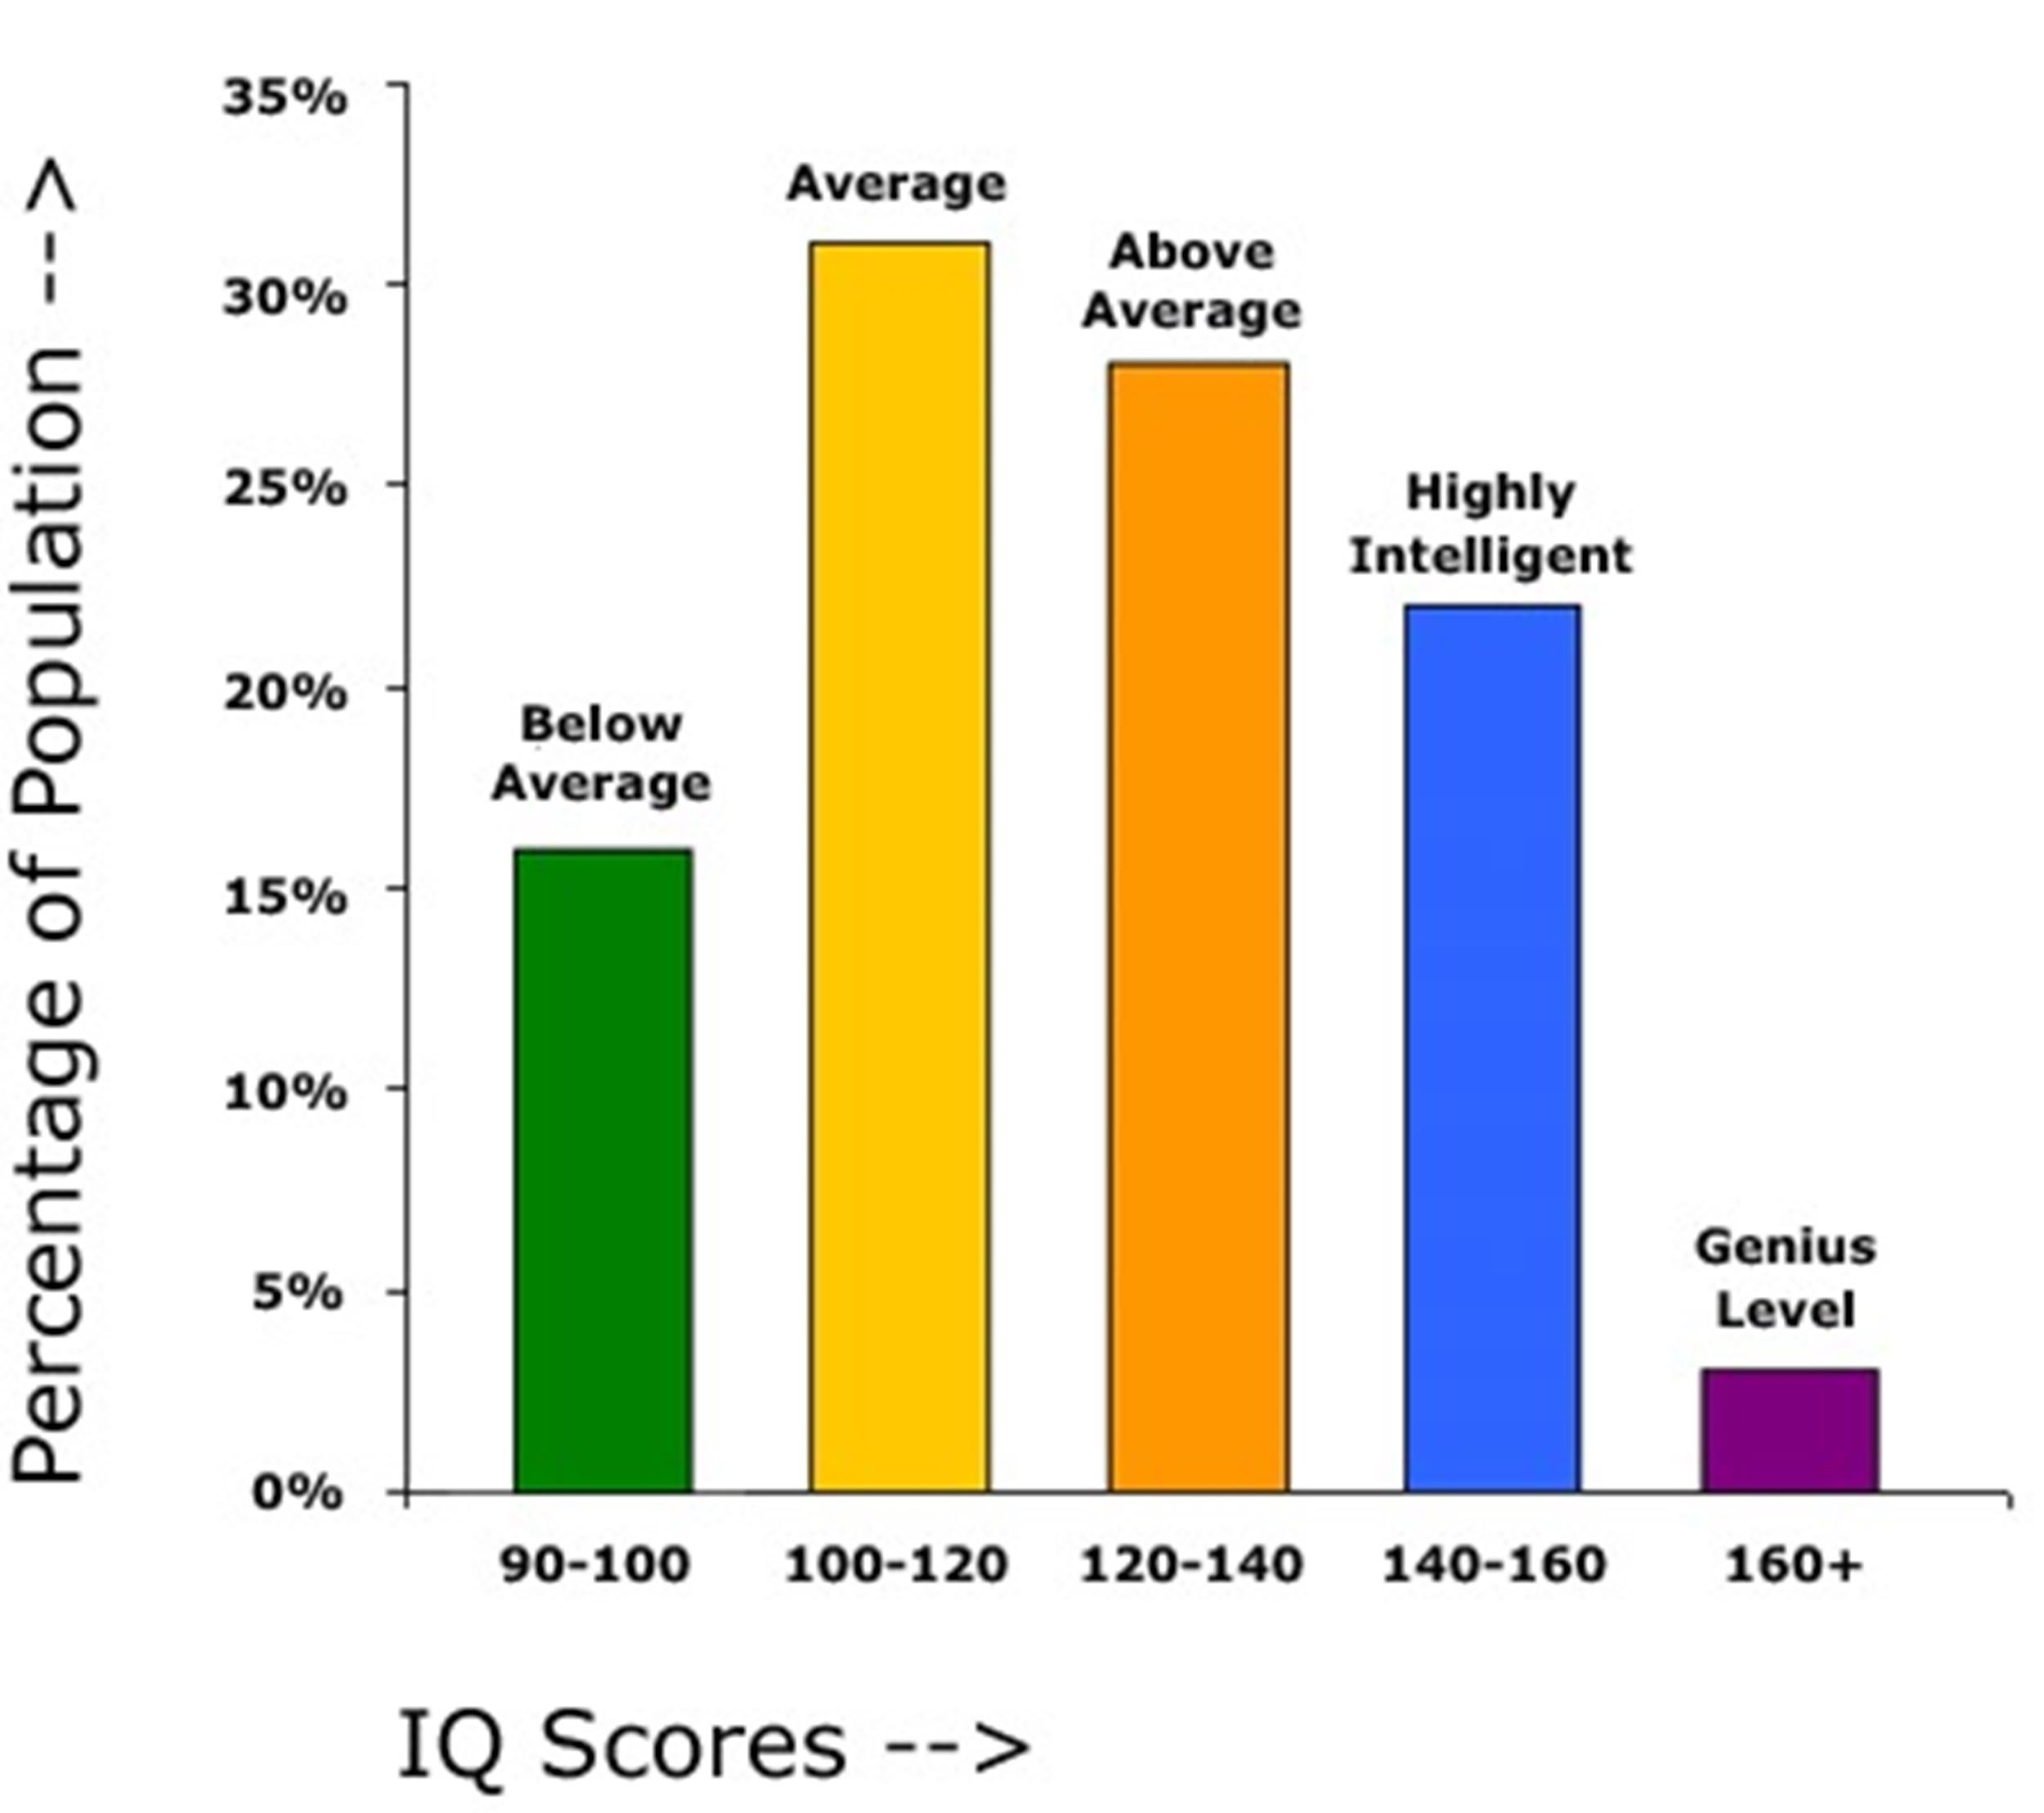 30+ Printable Iq Charts, Iq Scores, Iq Levels - Template Lab